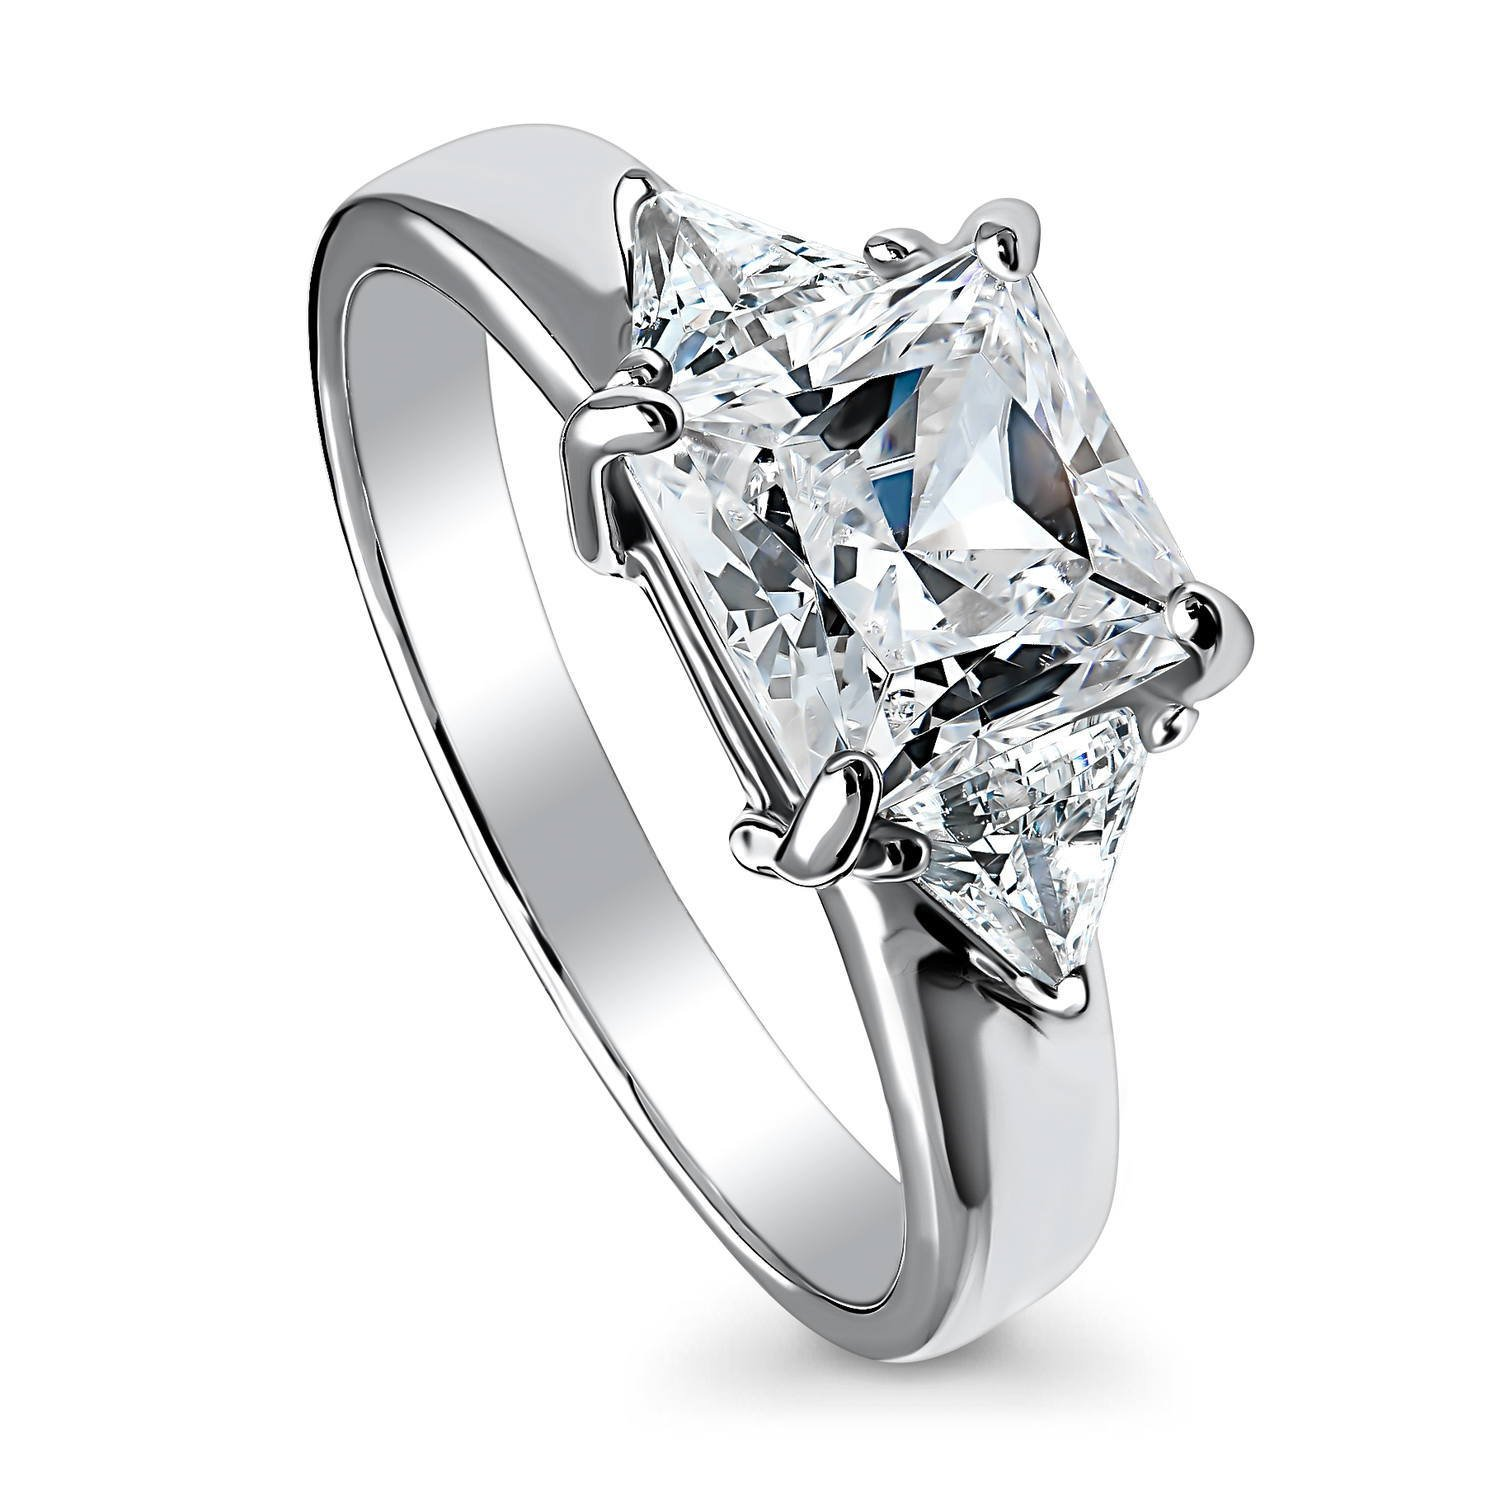 BERRICLE Rhodium Plated Sterling Silver Cubic Zirconia CZ 3-Stone Promise Engagement Ring Size 9